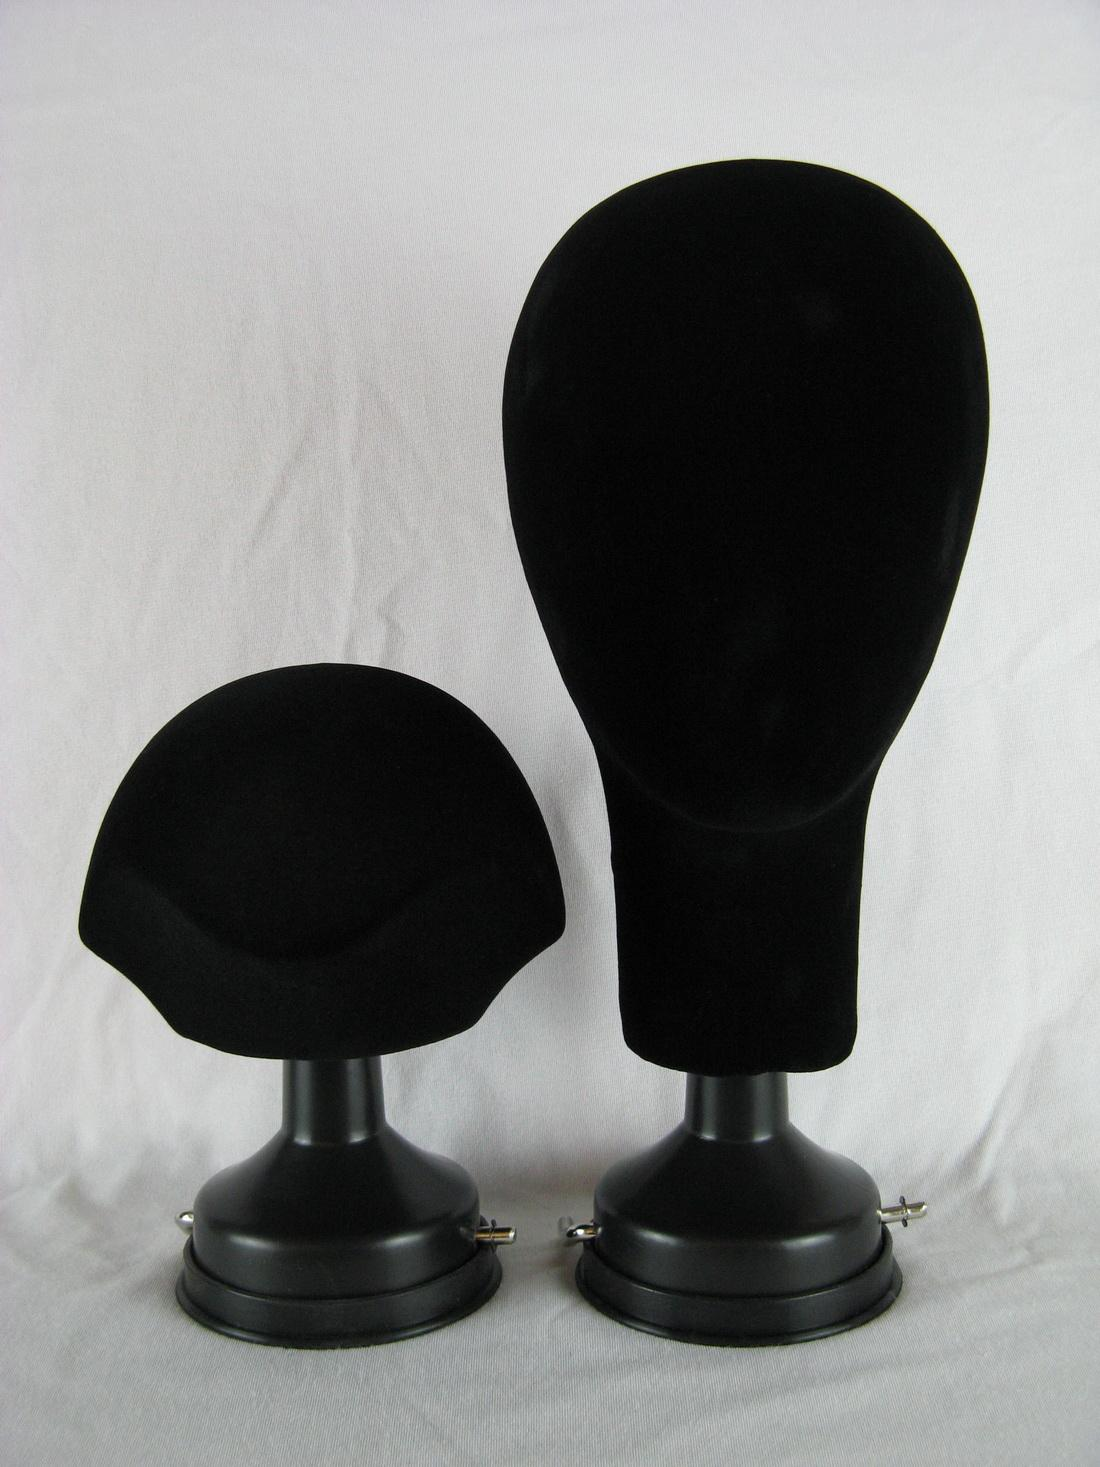 mannequin chair stand covers orlando fl 2019 upscale suction cup wig hairpiece substrate head pedestal foundation model heads necklace hat holder from greenlily